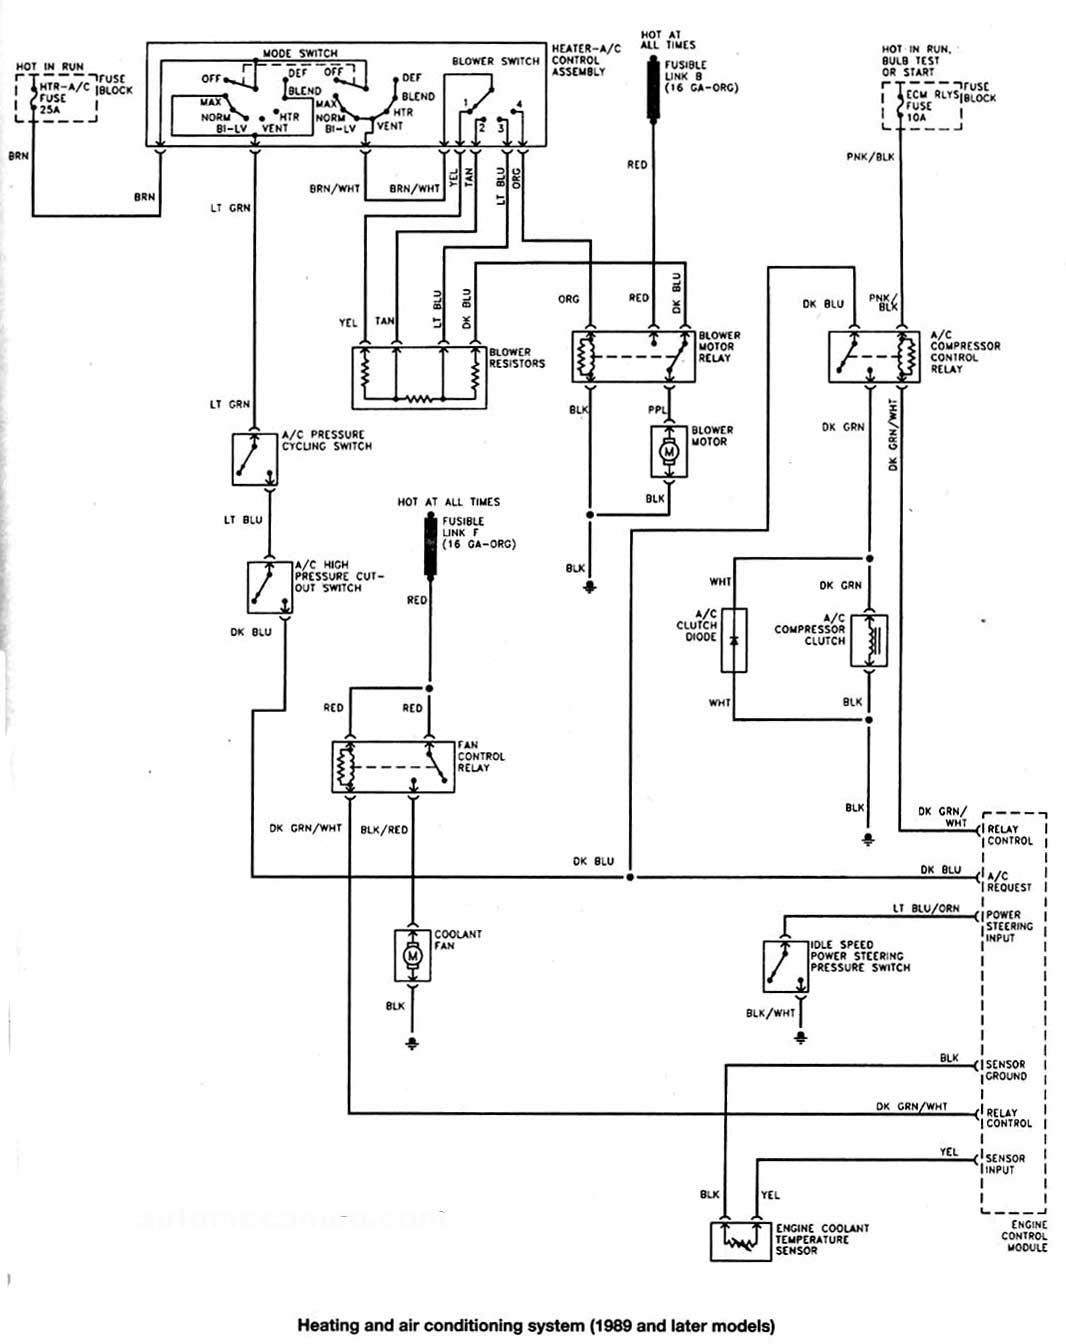 2003 Chrysler Voyager Wiring Diagram